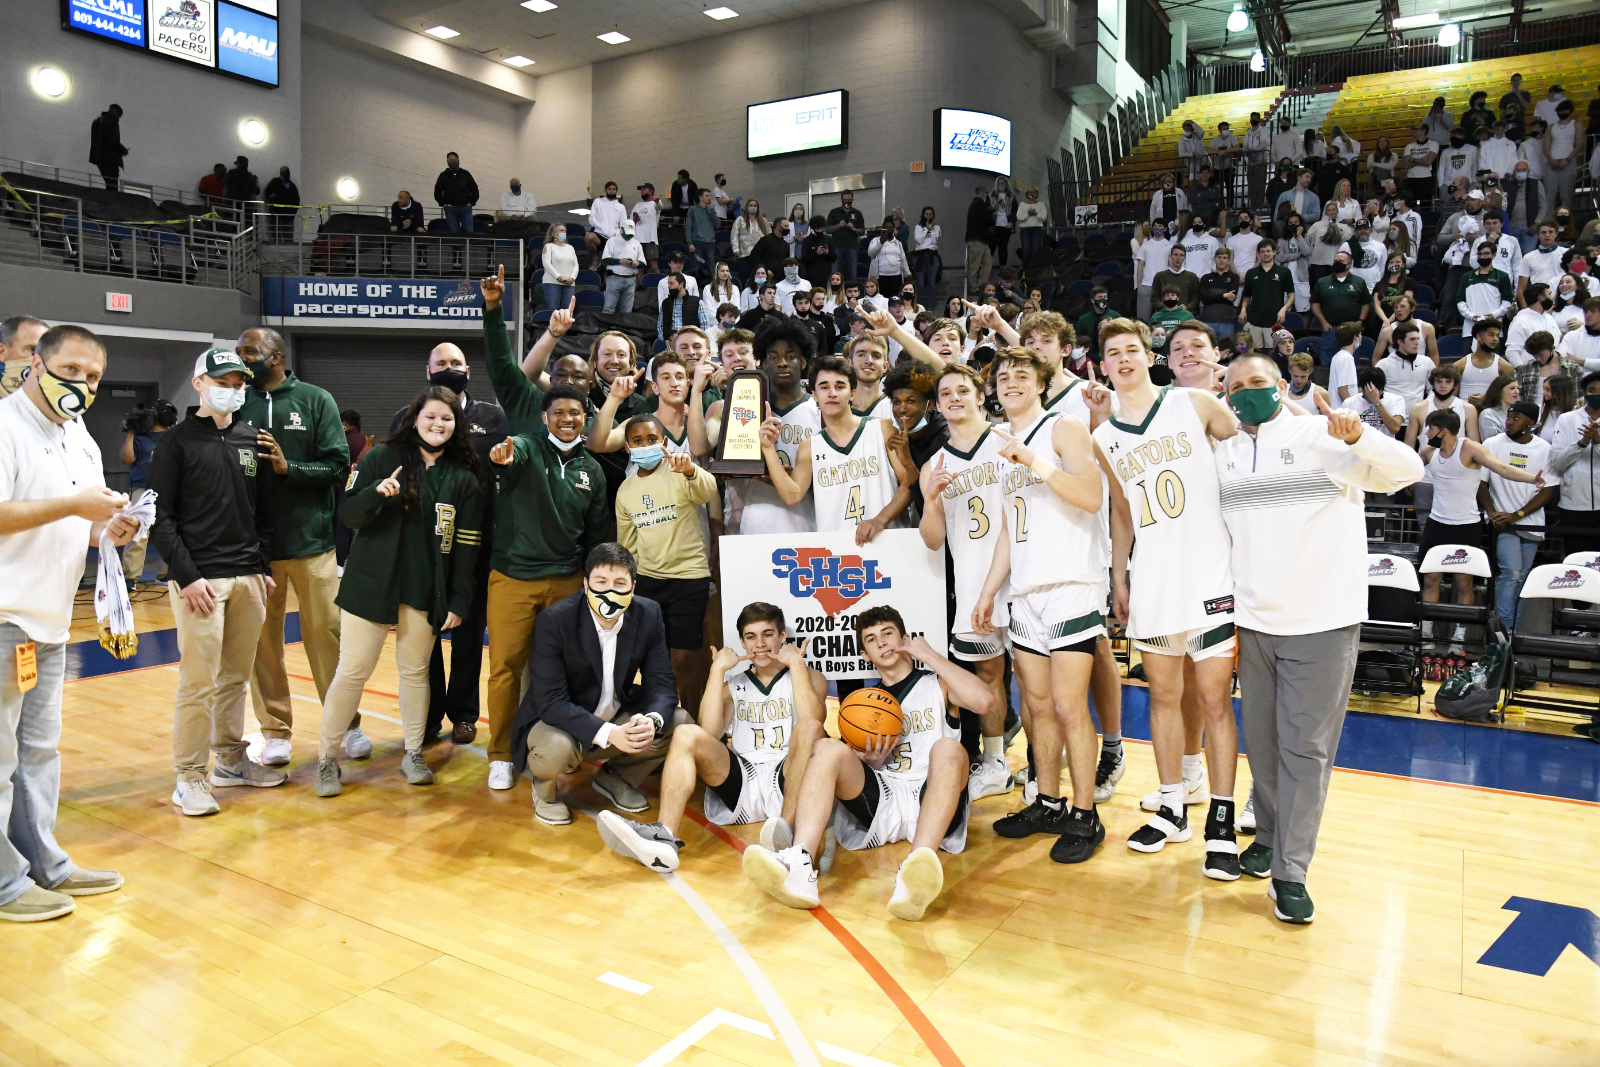 Photo Gallery: Men's Basketball 2020-21 State Championship – Trophy and Awards Presentation